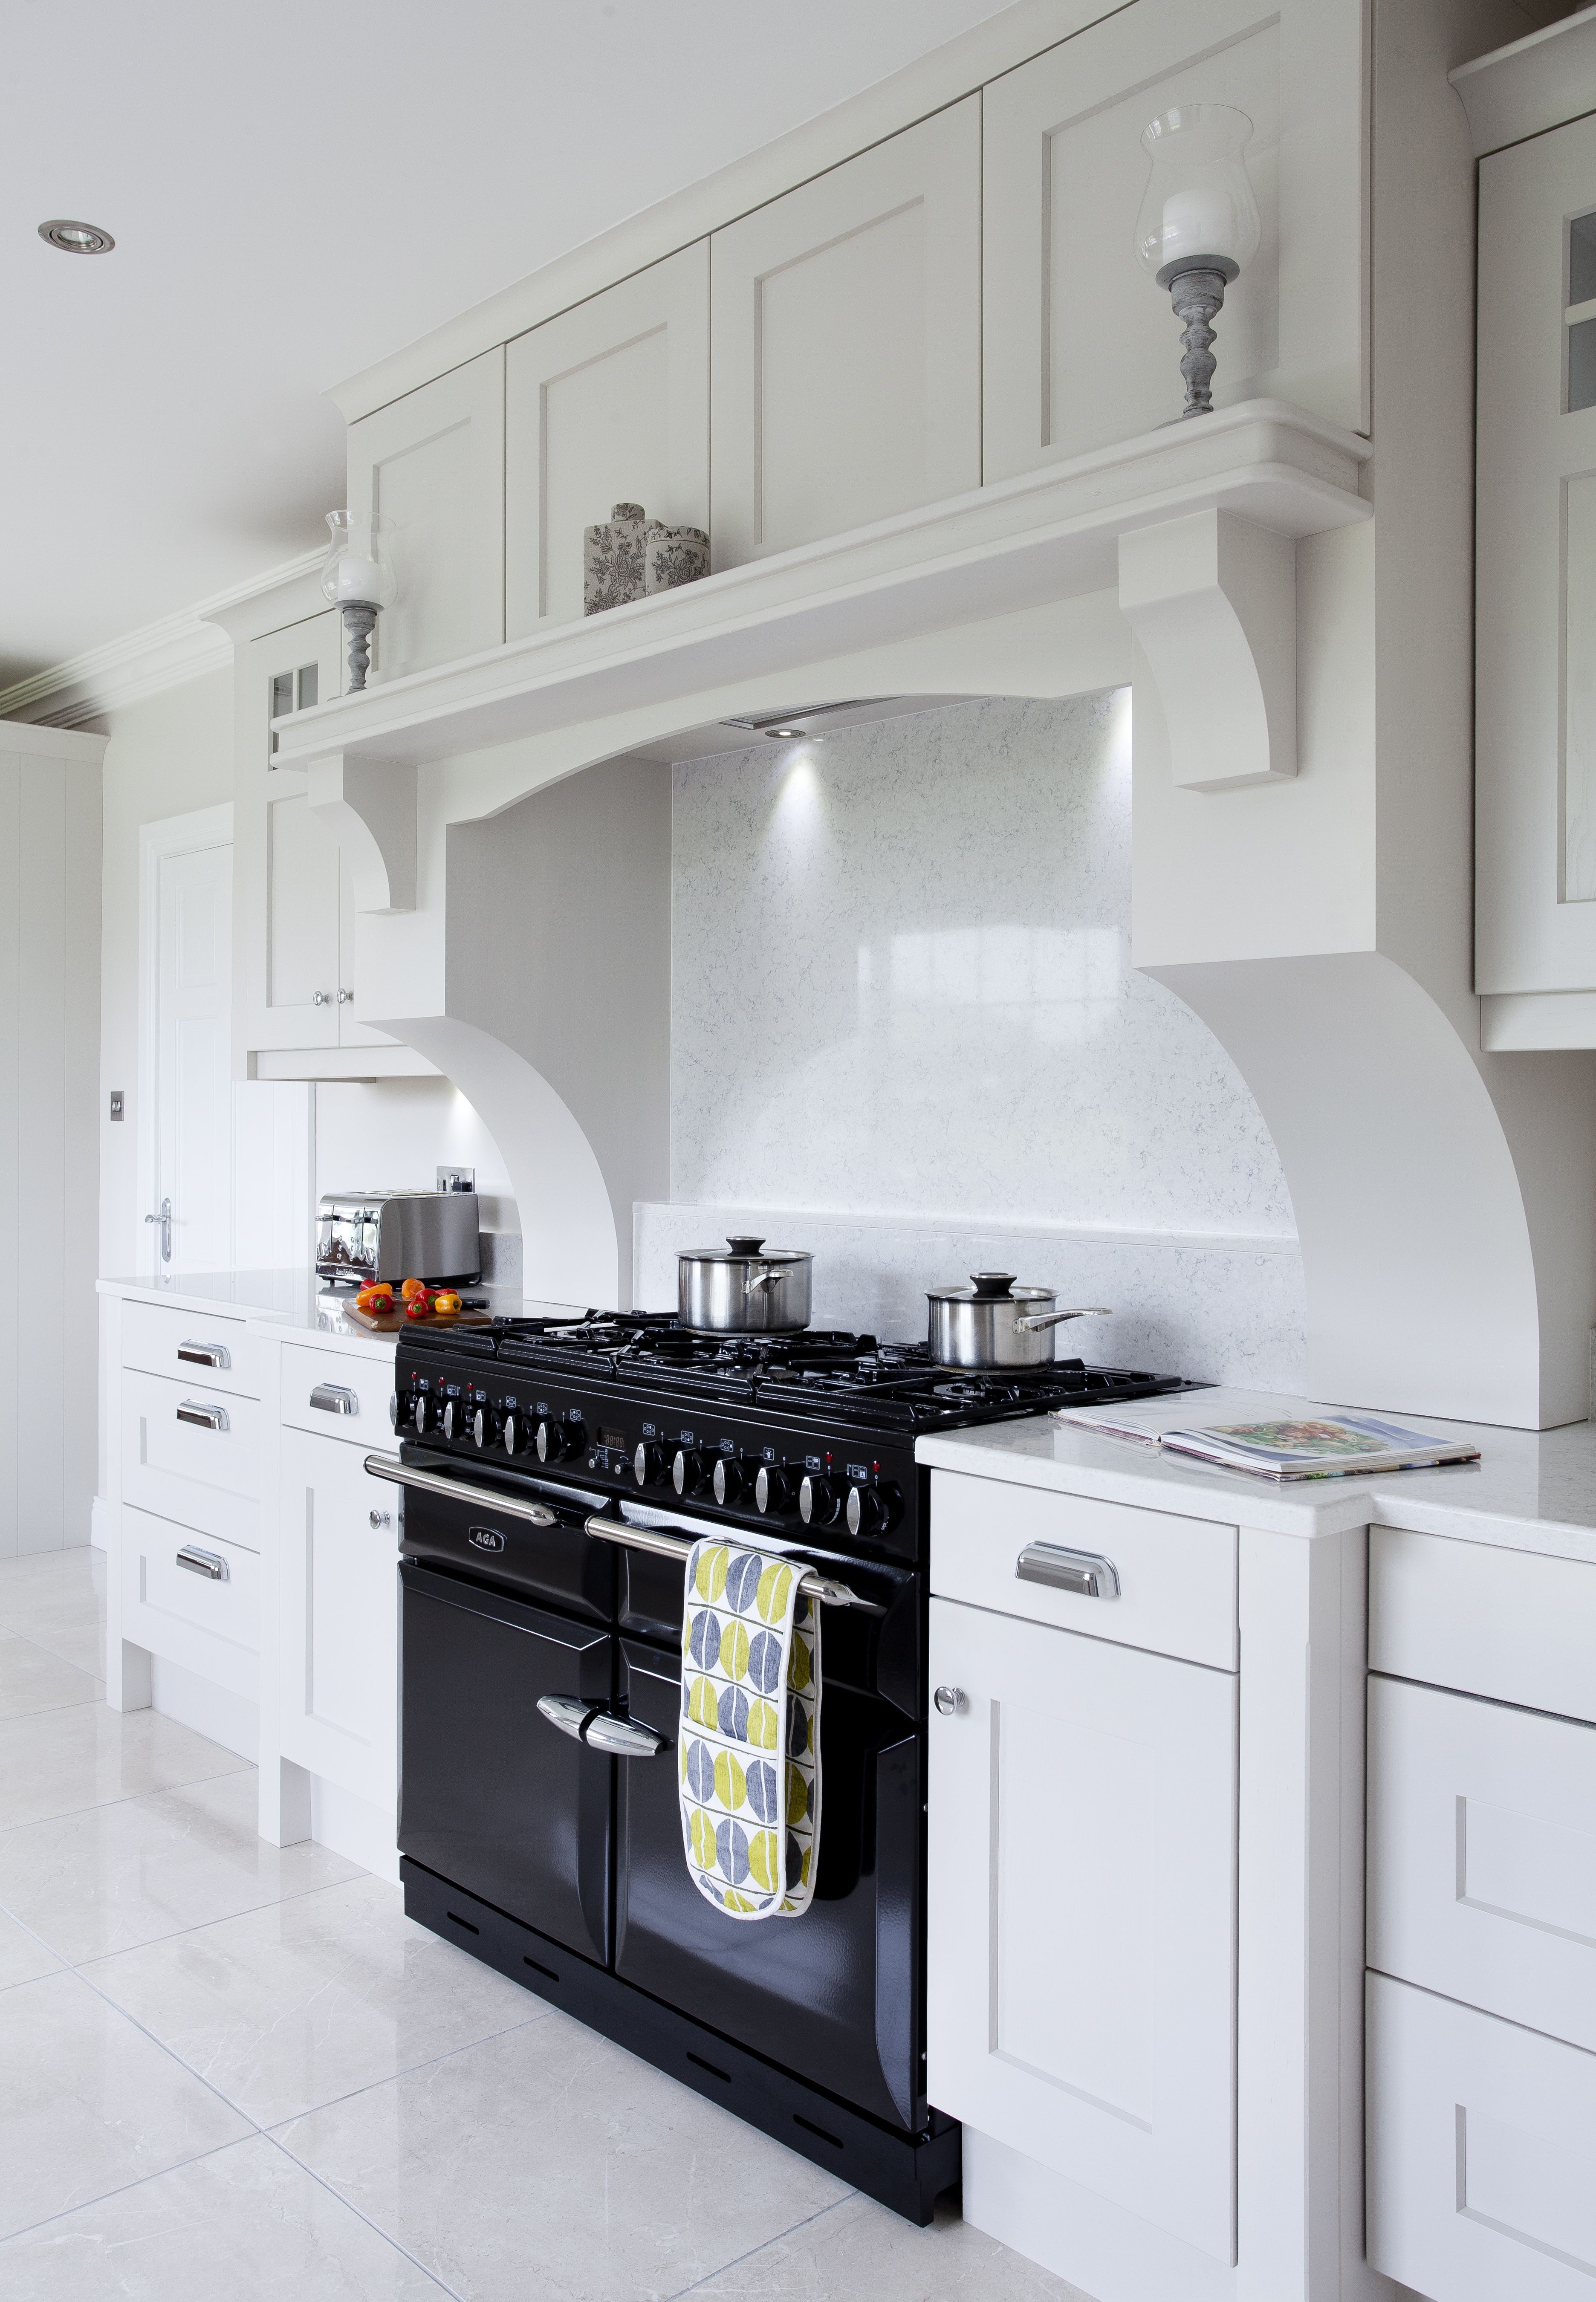 This Bespoke Over Mantle By Dorans Kitchen Home Frames The Range Cooker And Creates An Elegant Contrast Kitchen Cooker Kitchen Mantle Kitchen Design